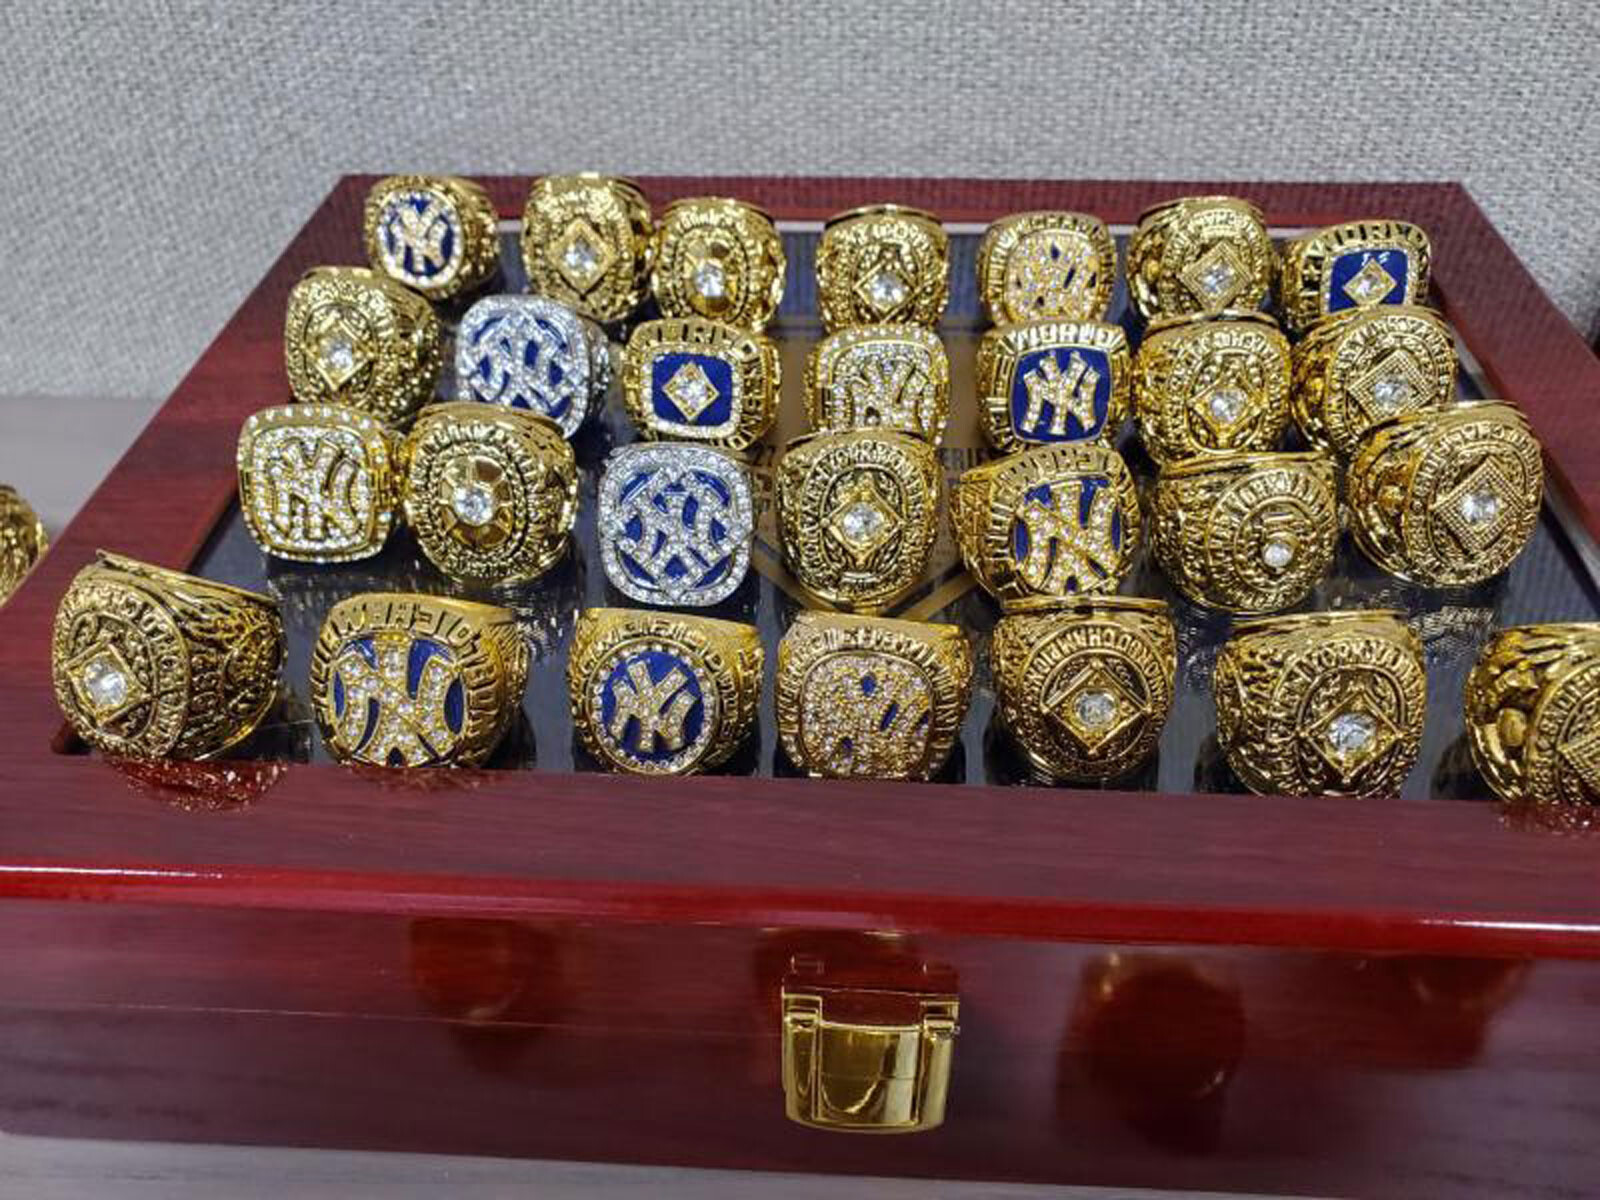 <i>US Customs and Border Protection</i><br/>US Customs and Border Protection officers seized 86 counterfeit championship rings in Chicago.